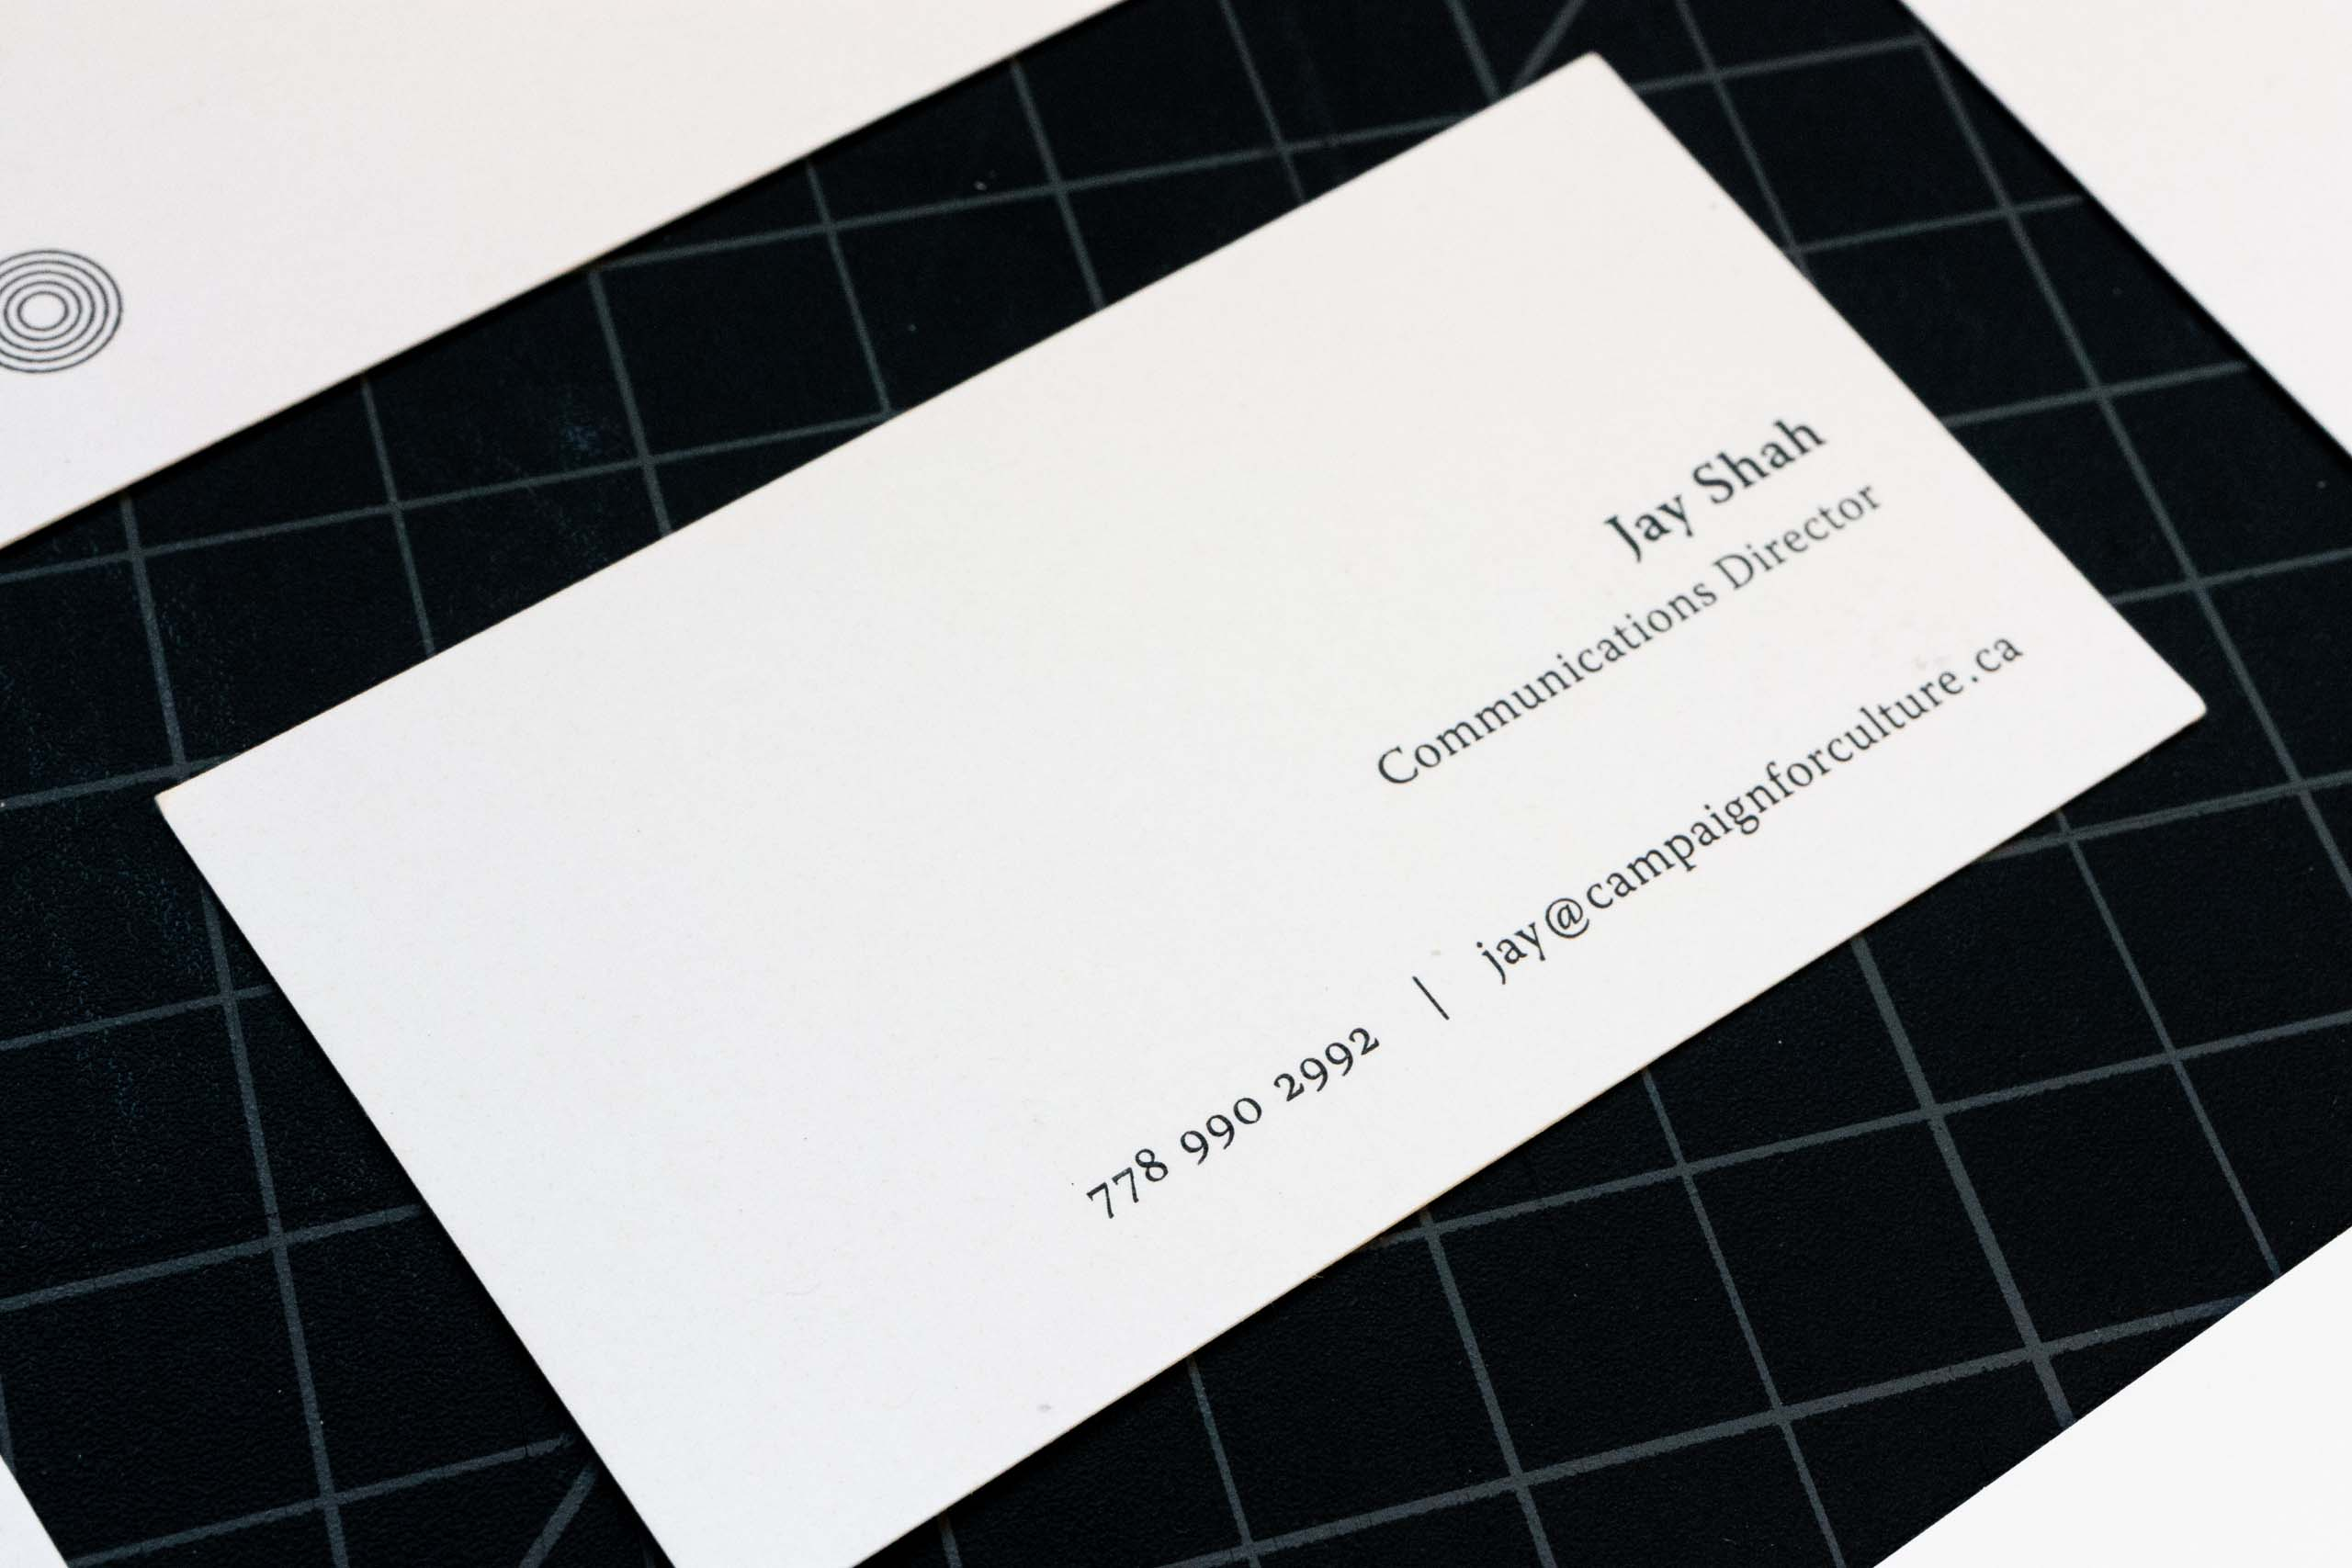 Campaign for Culture information side of the business cards featuring Communication Director — by Yagnyuk.